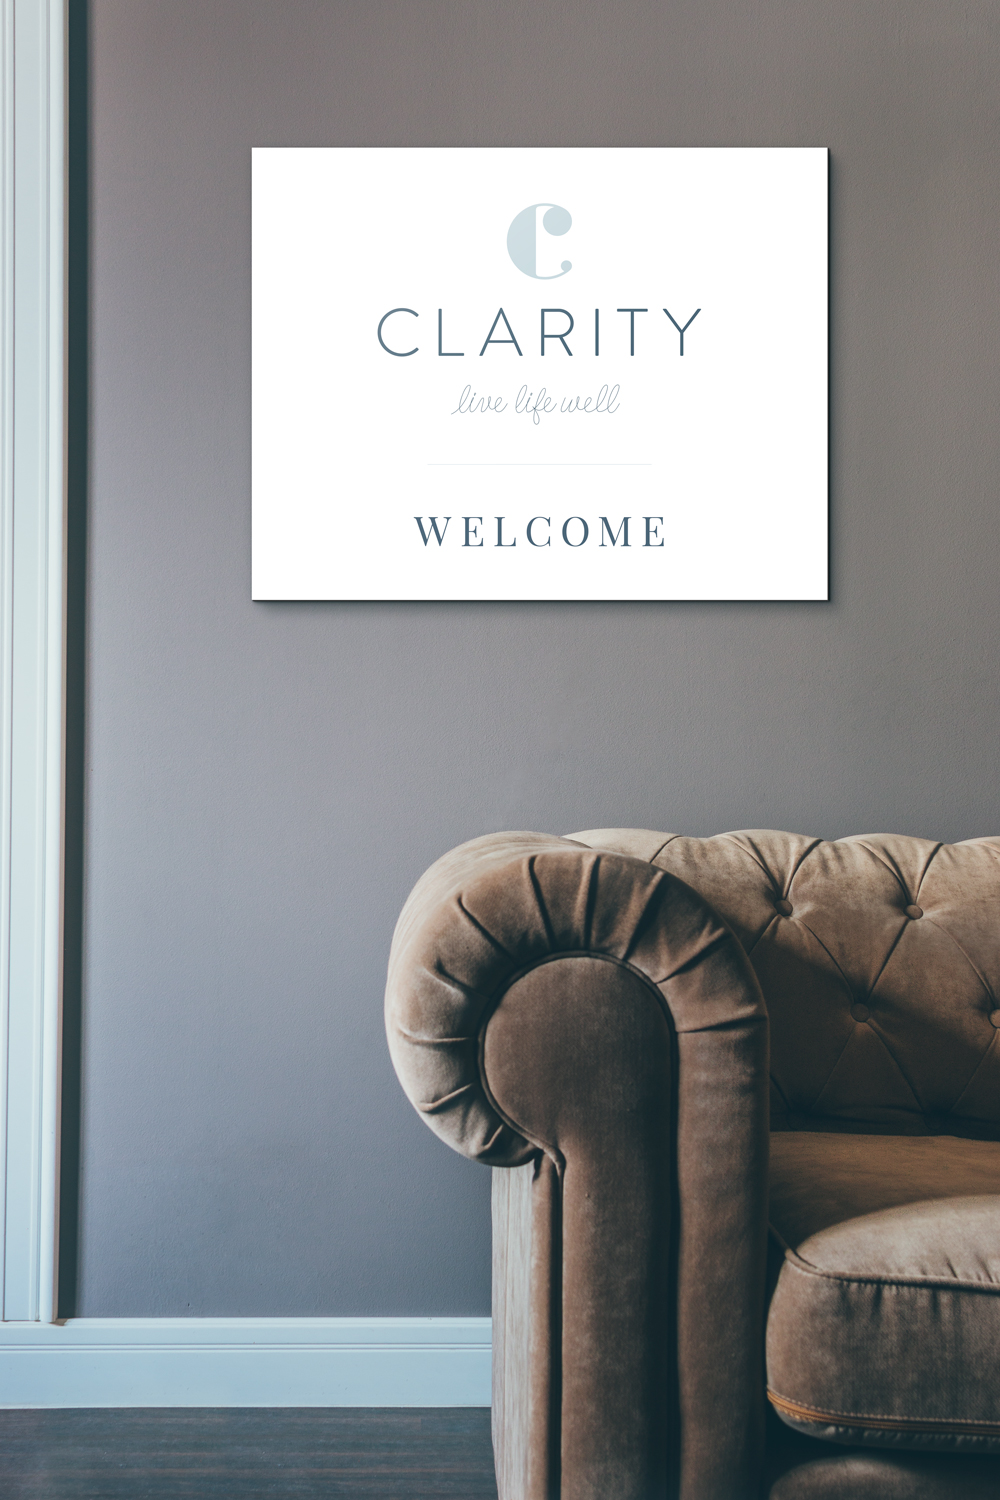 Clarity logo design and brand identity by Ditto Creative, branding agency Kent